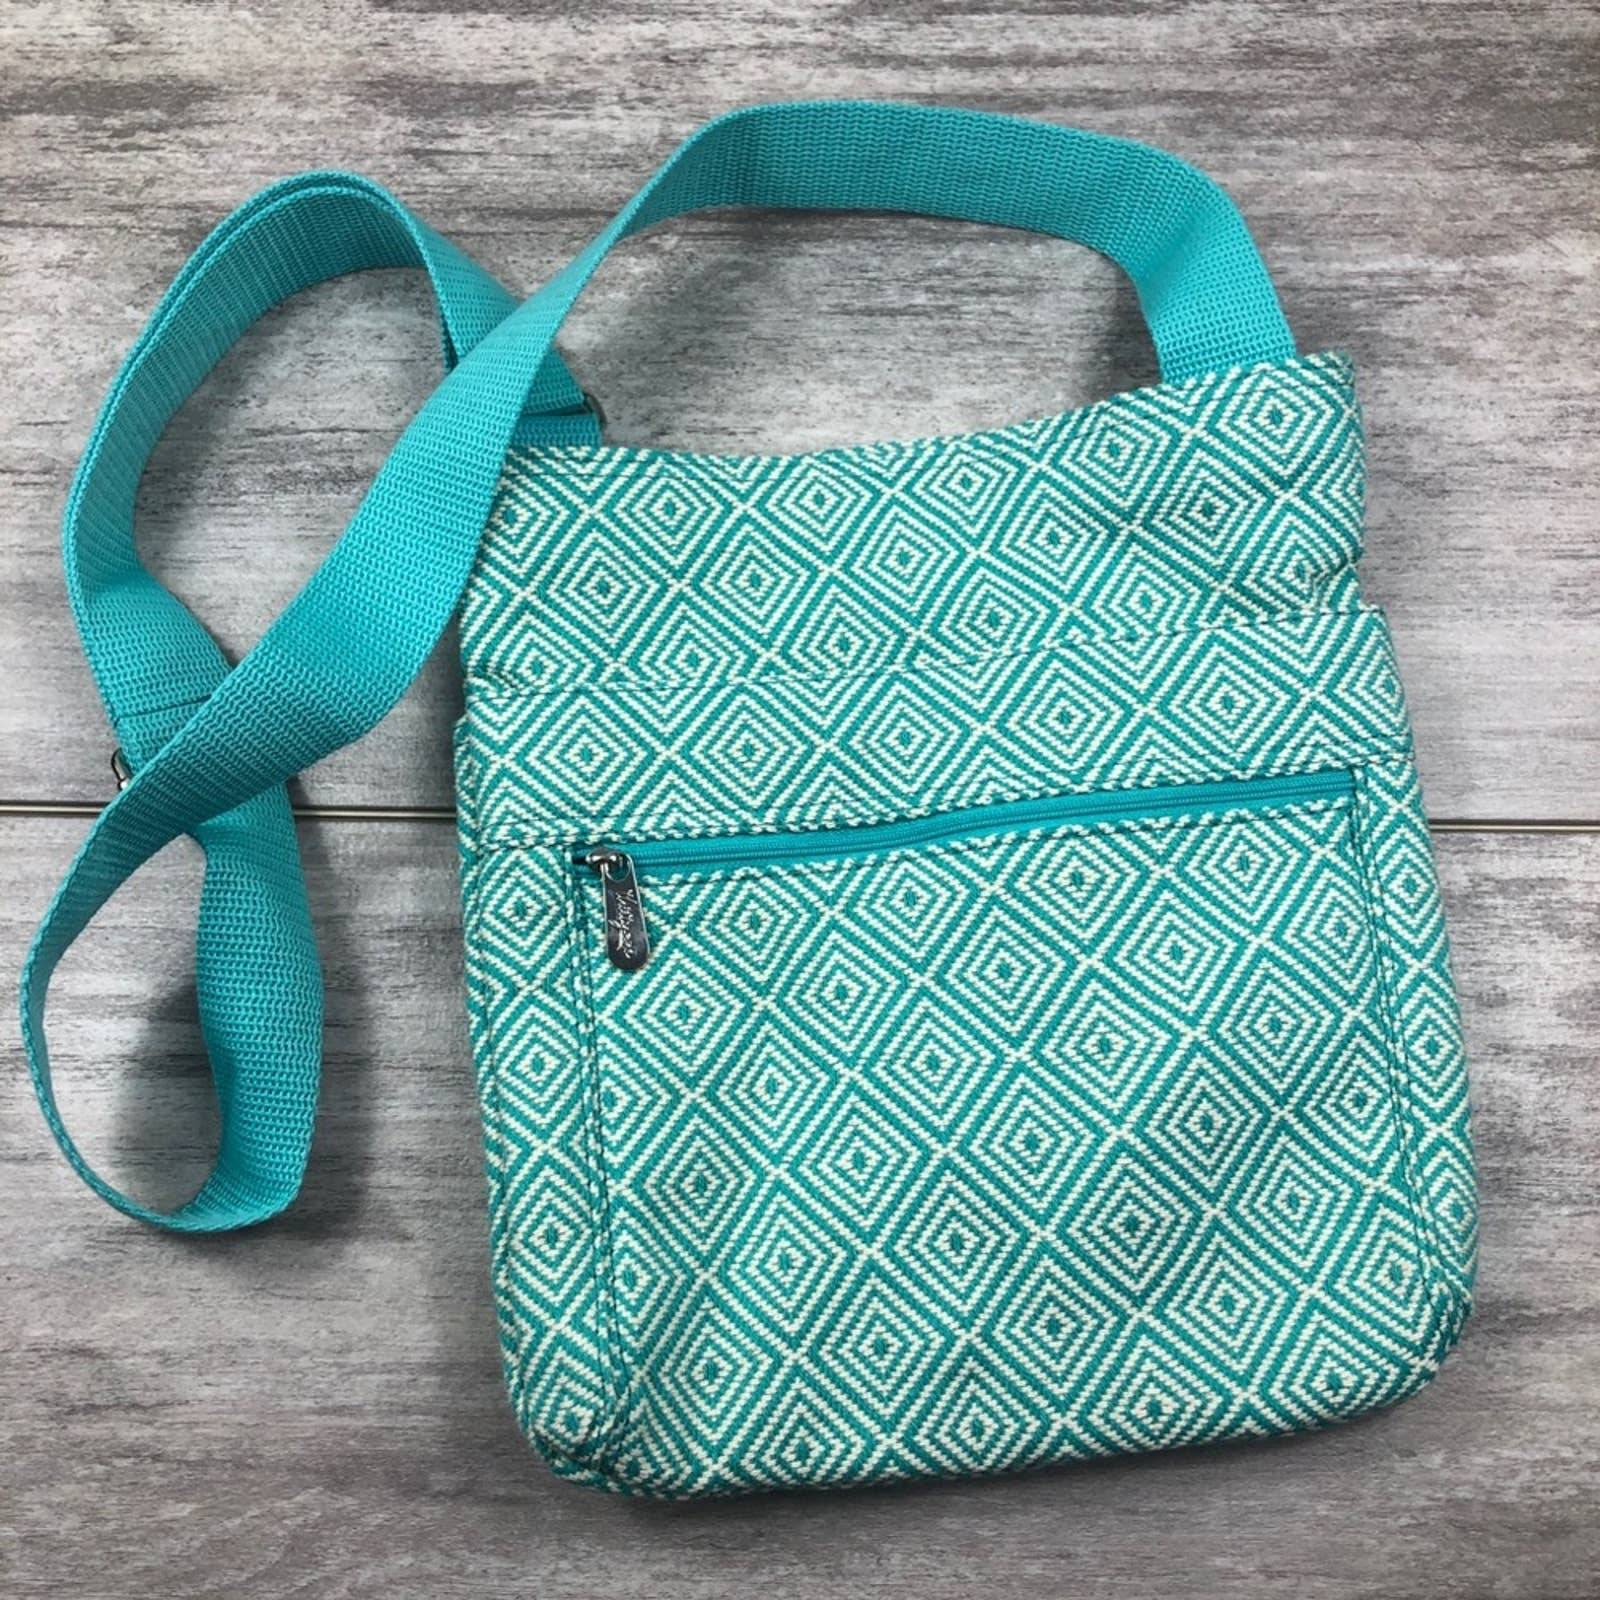 THIRTY-ONE blue and white crossbody bag